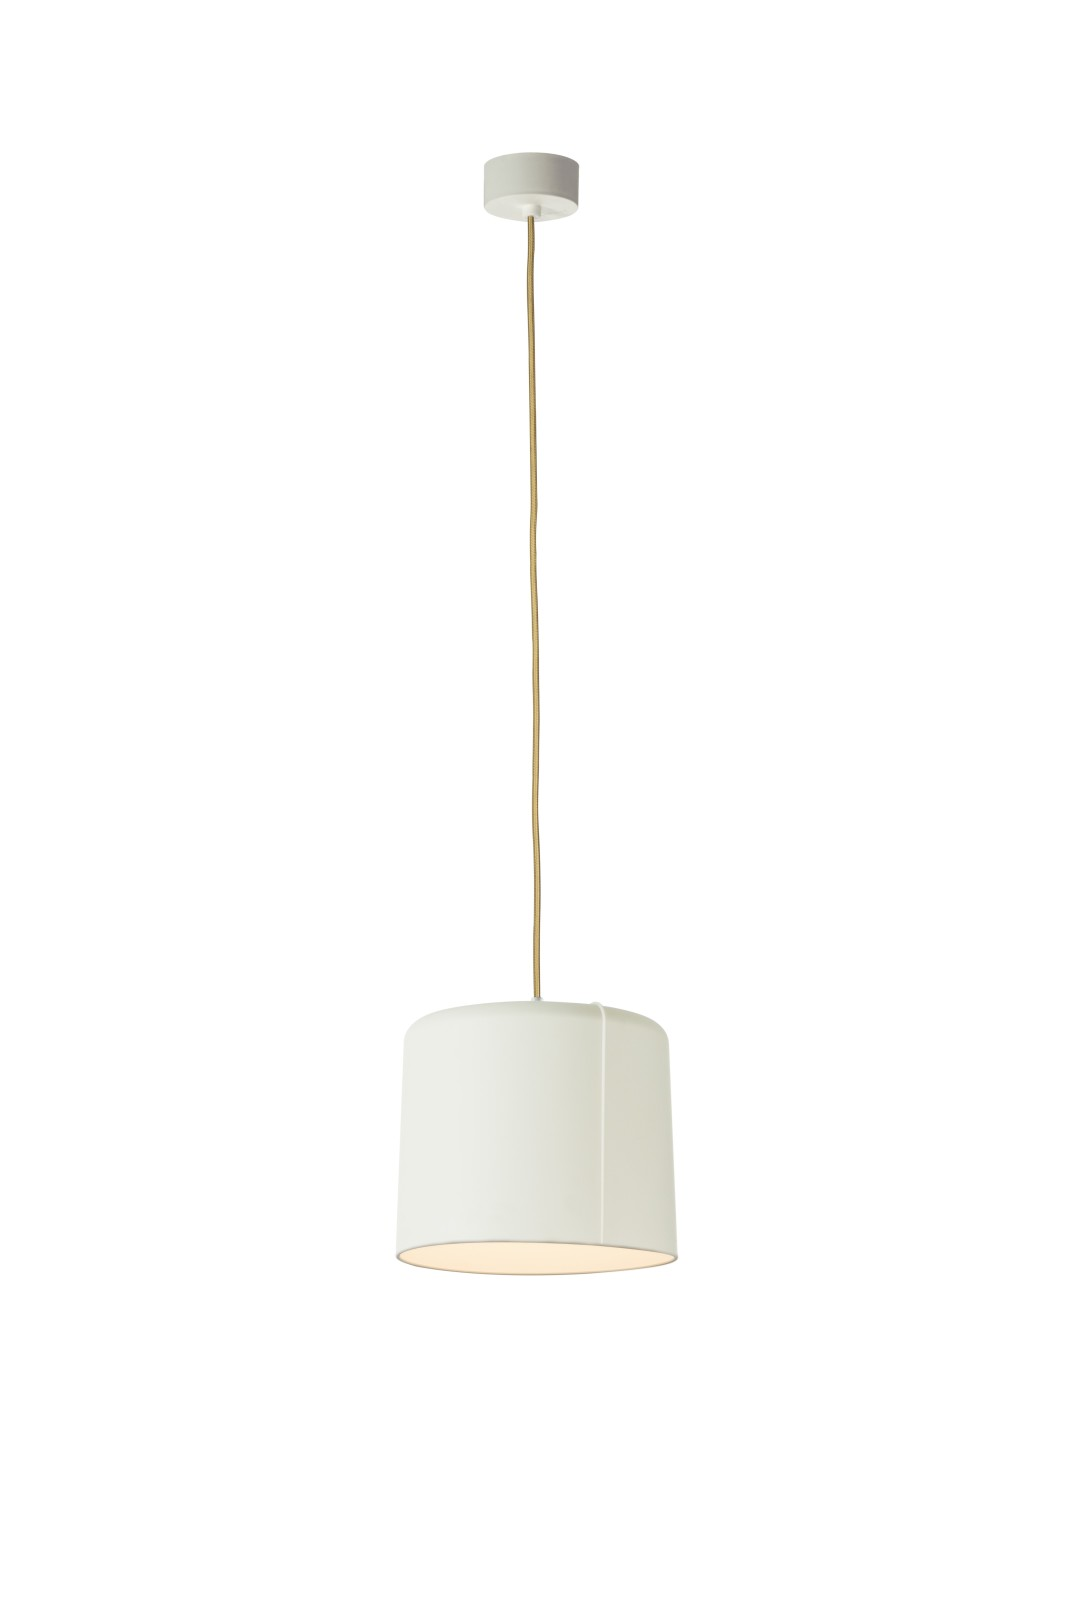 Candle 2 Pendant Light White, Gold